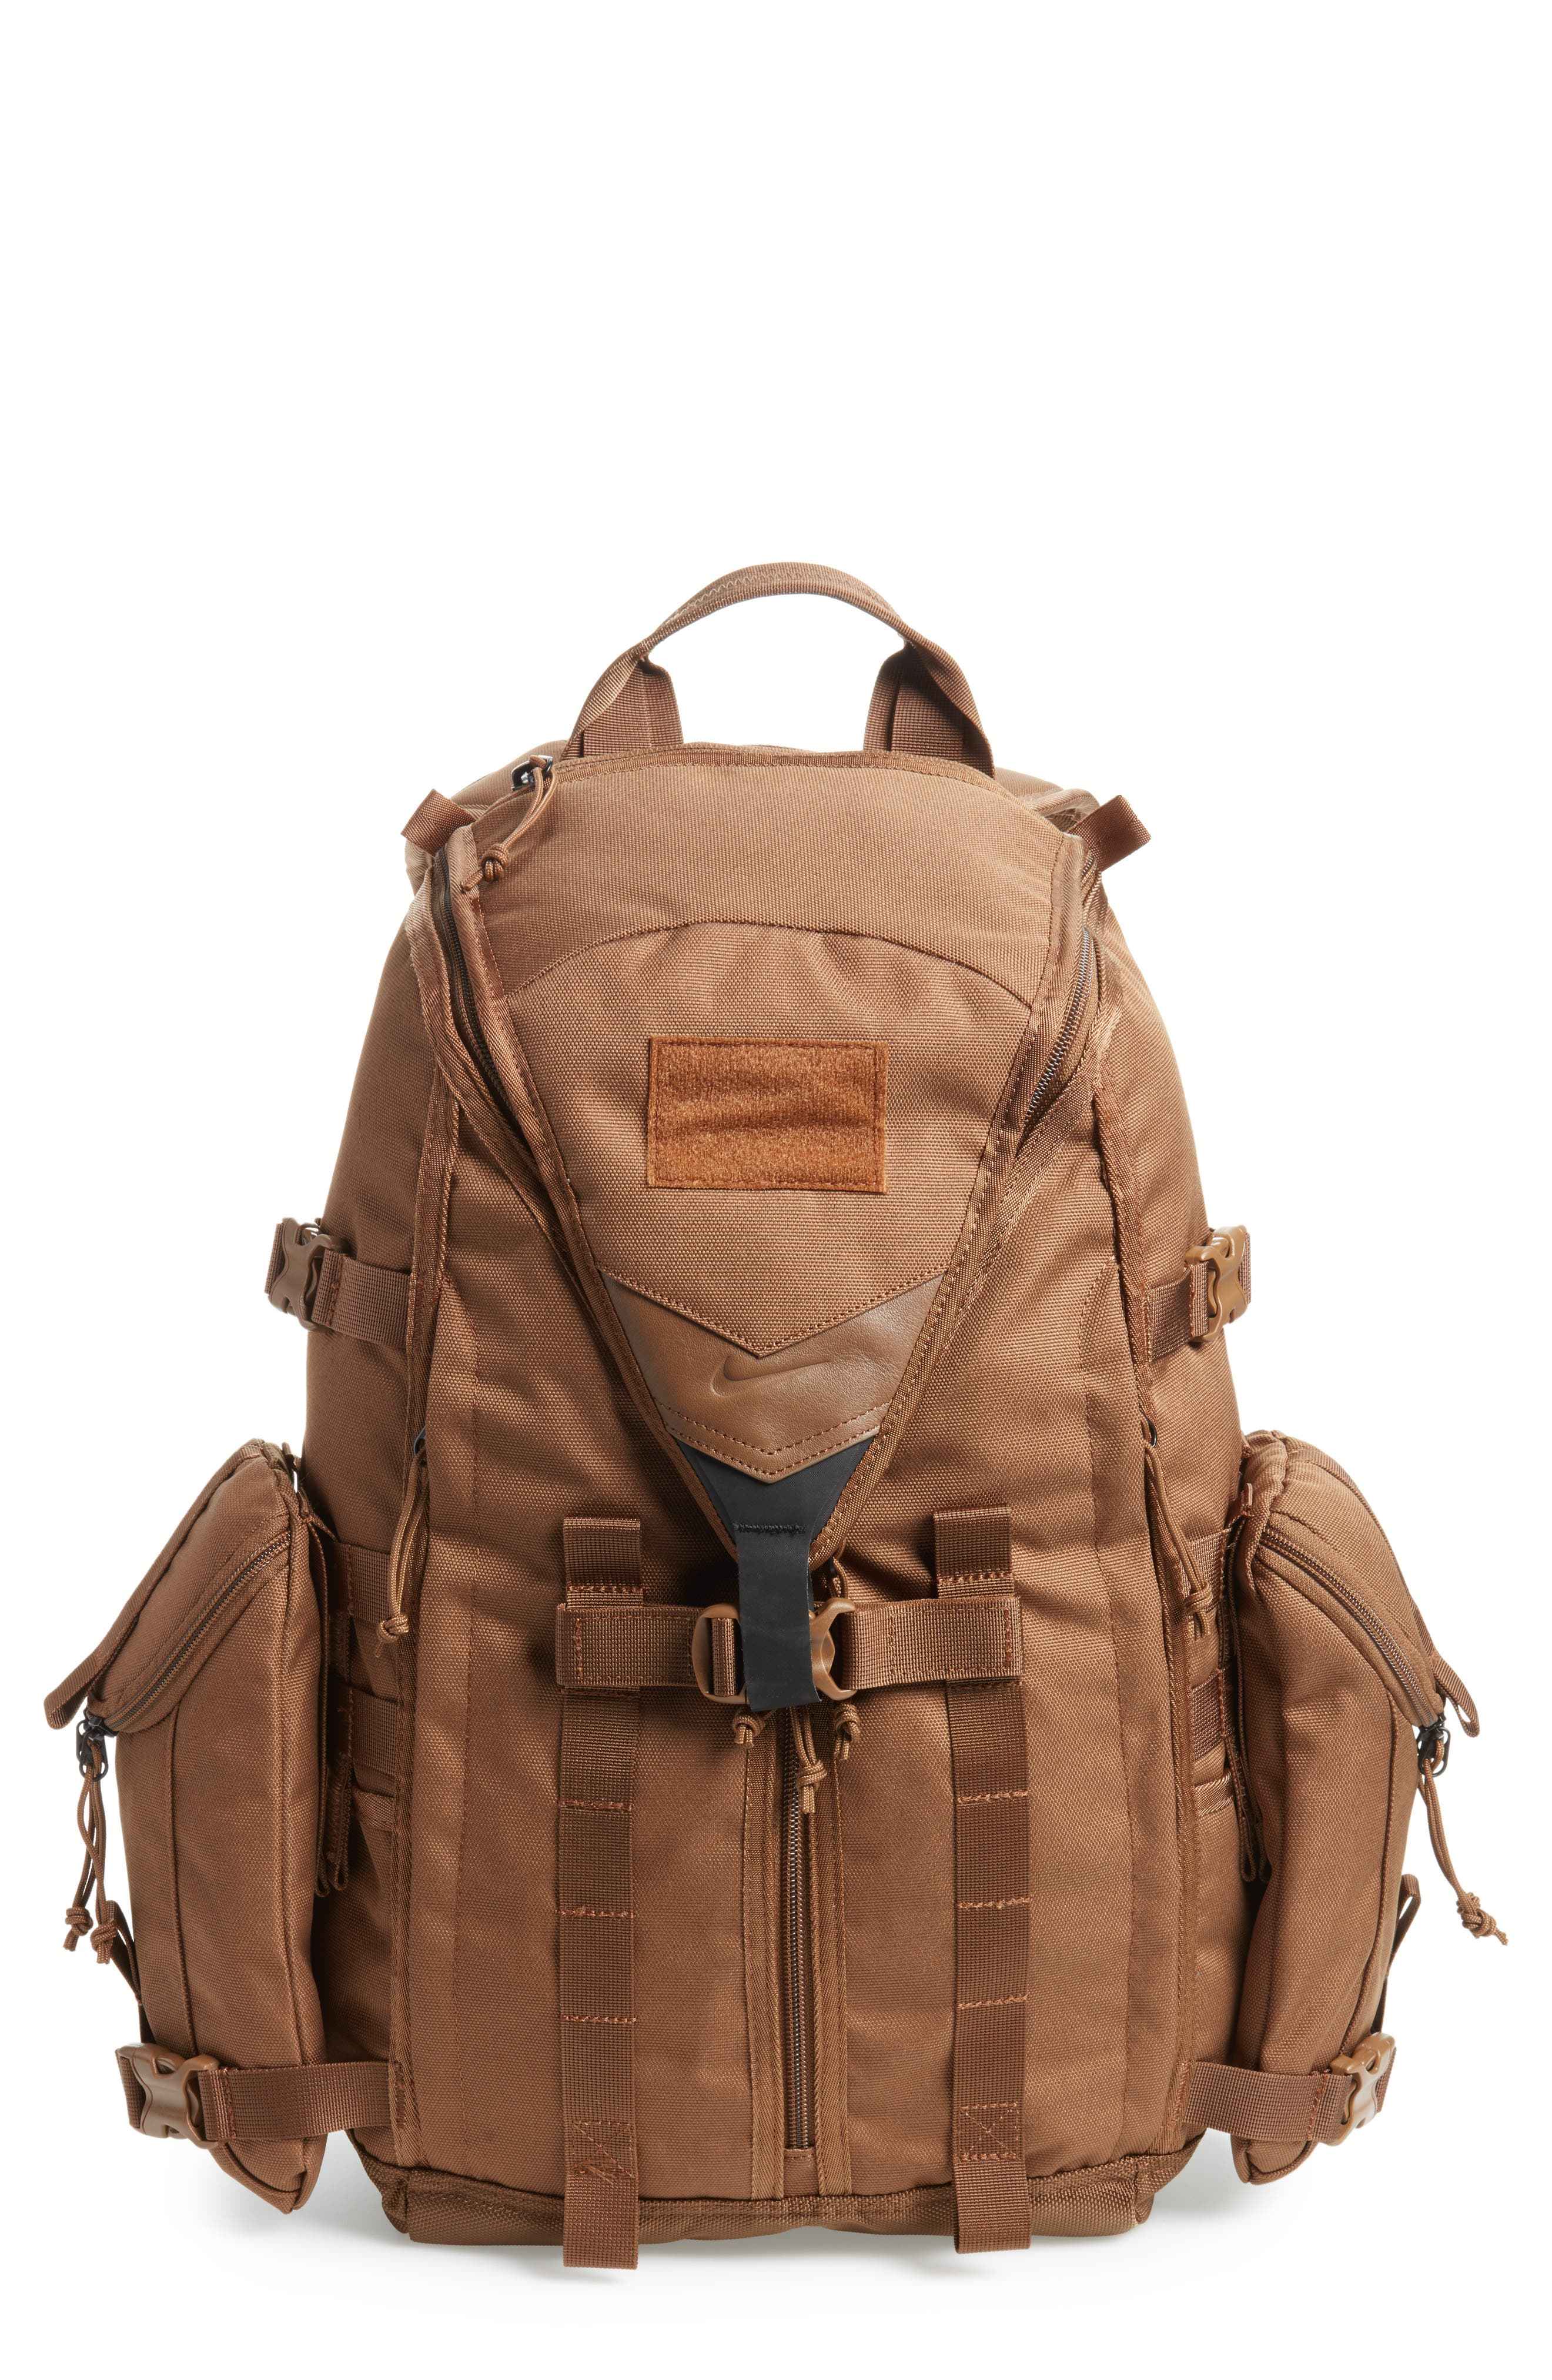 SFS Responder Backpack,                         Main,                         color, Military Brown/ Military Brown